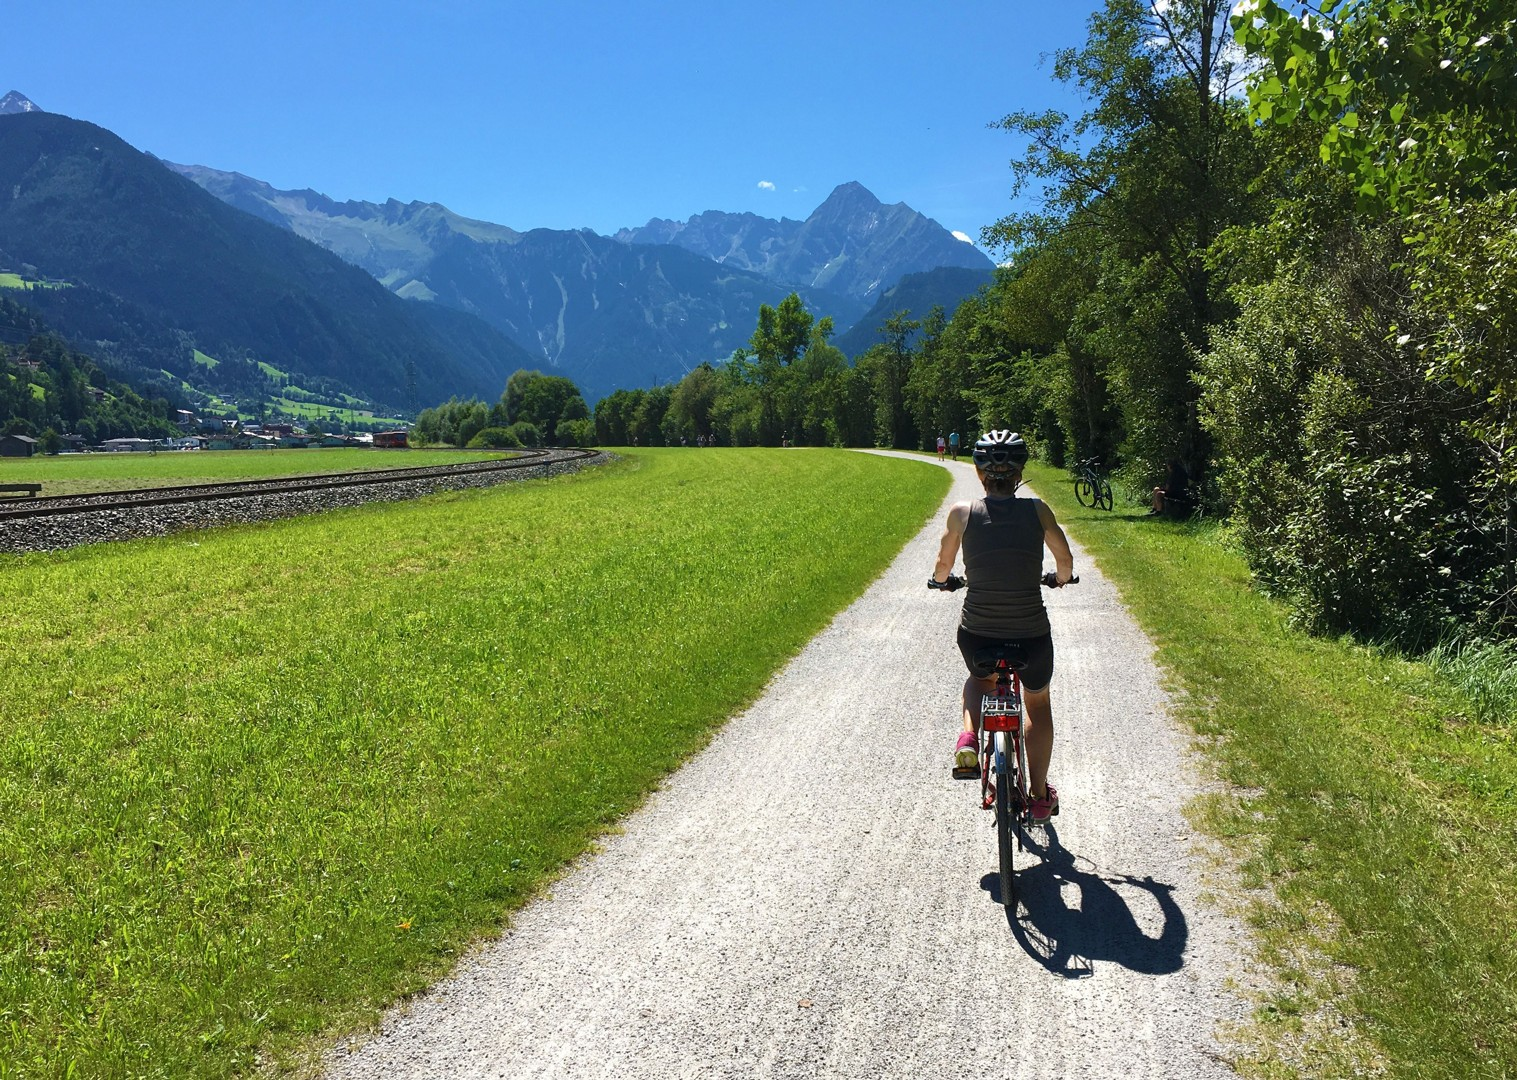 austria-fields-family-cycling-bikes.jpg - Austria - Tauern Valleys - Self-Guided Family Cycling Holiday - Family Cycling